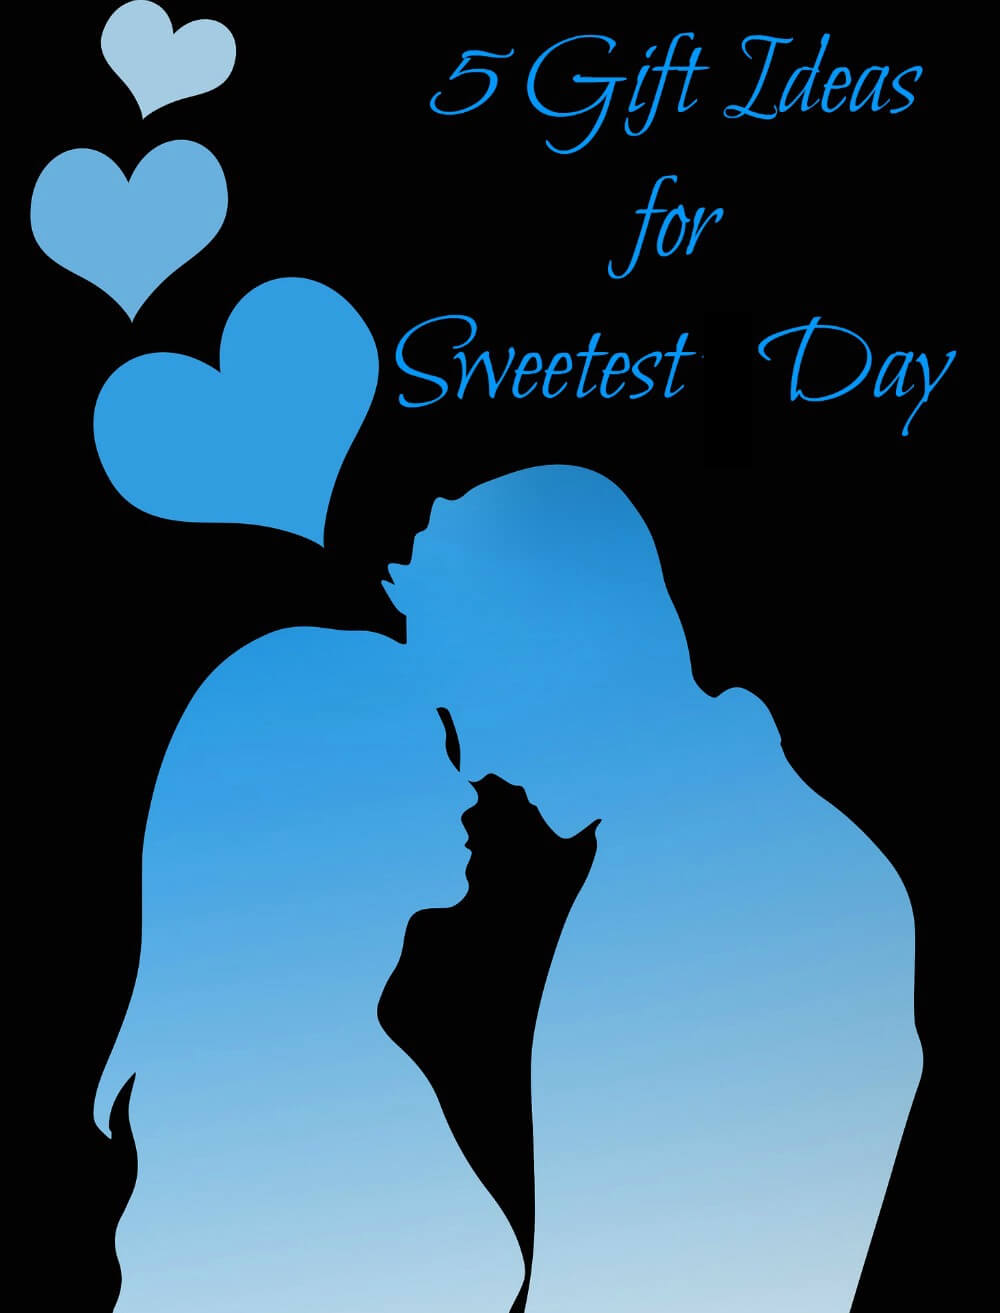 Romantic sweetest day ideas